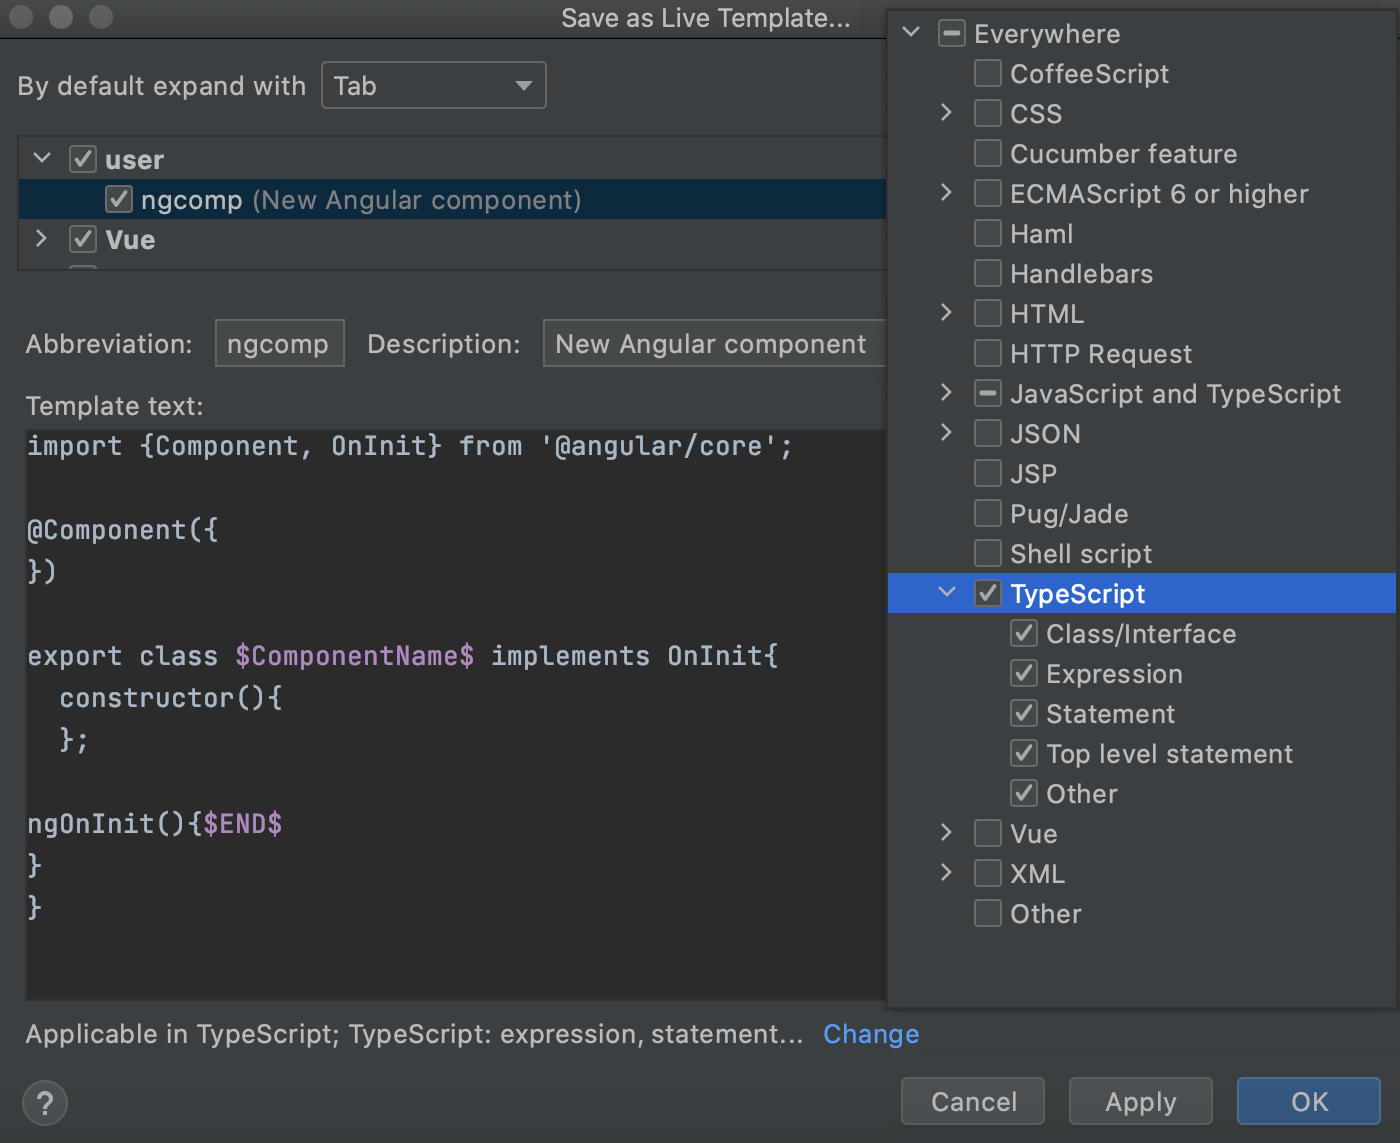 Save code fragment as live template: change context, the template is ready